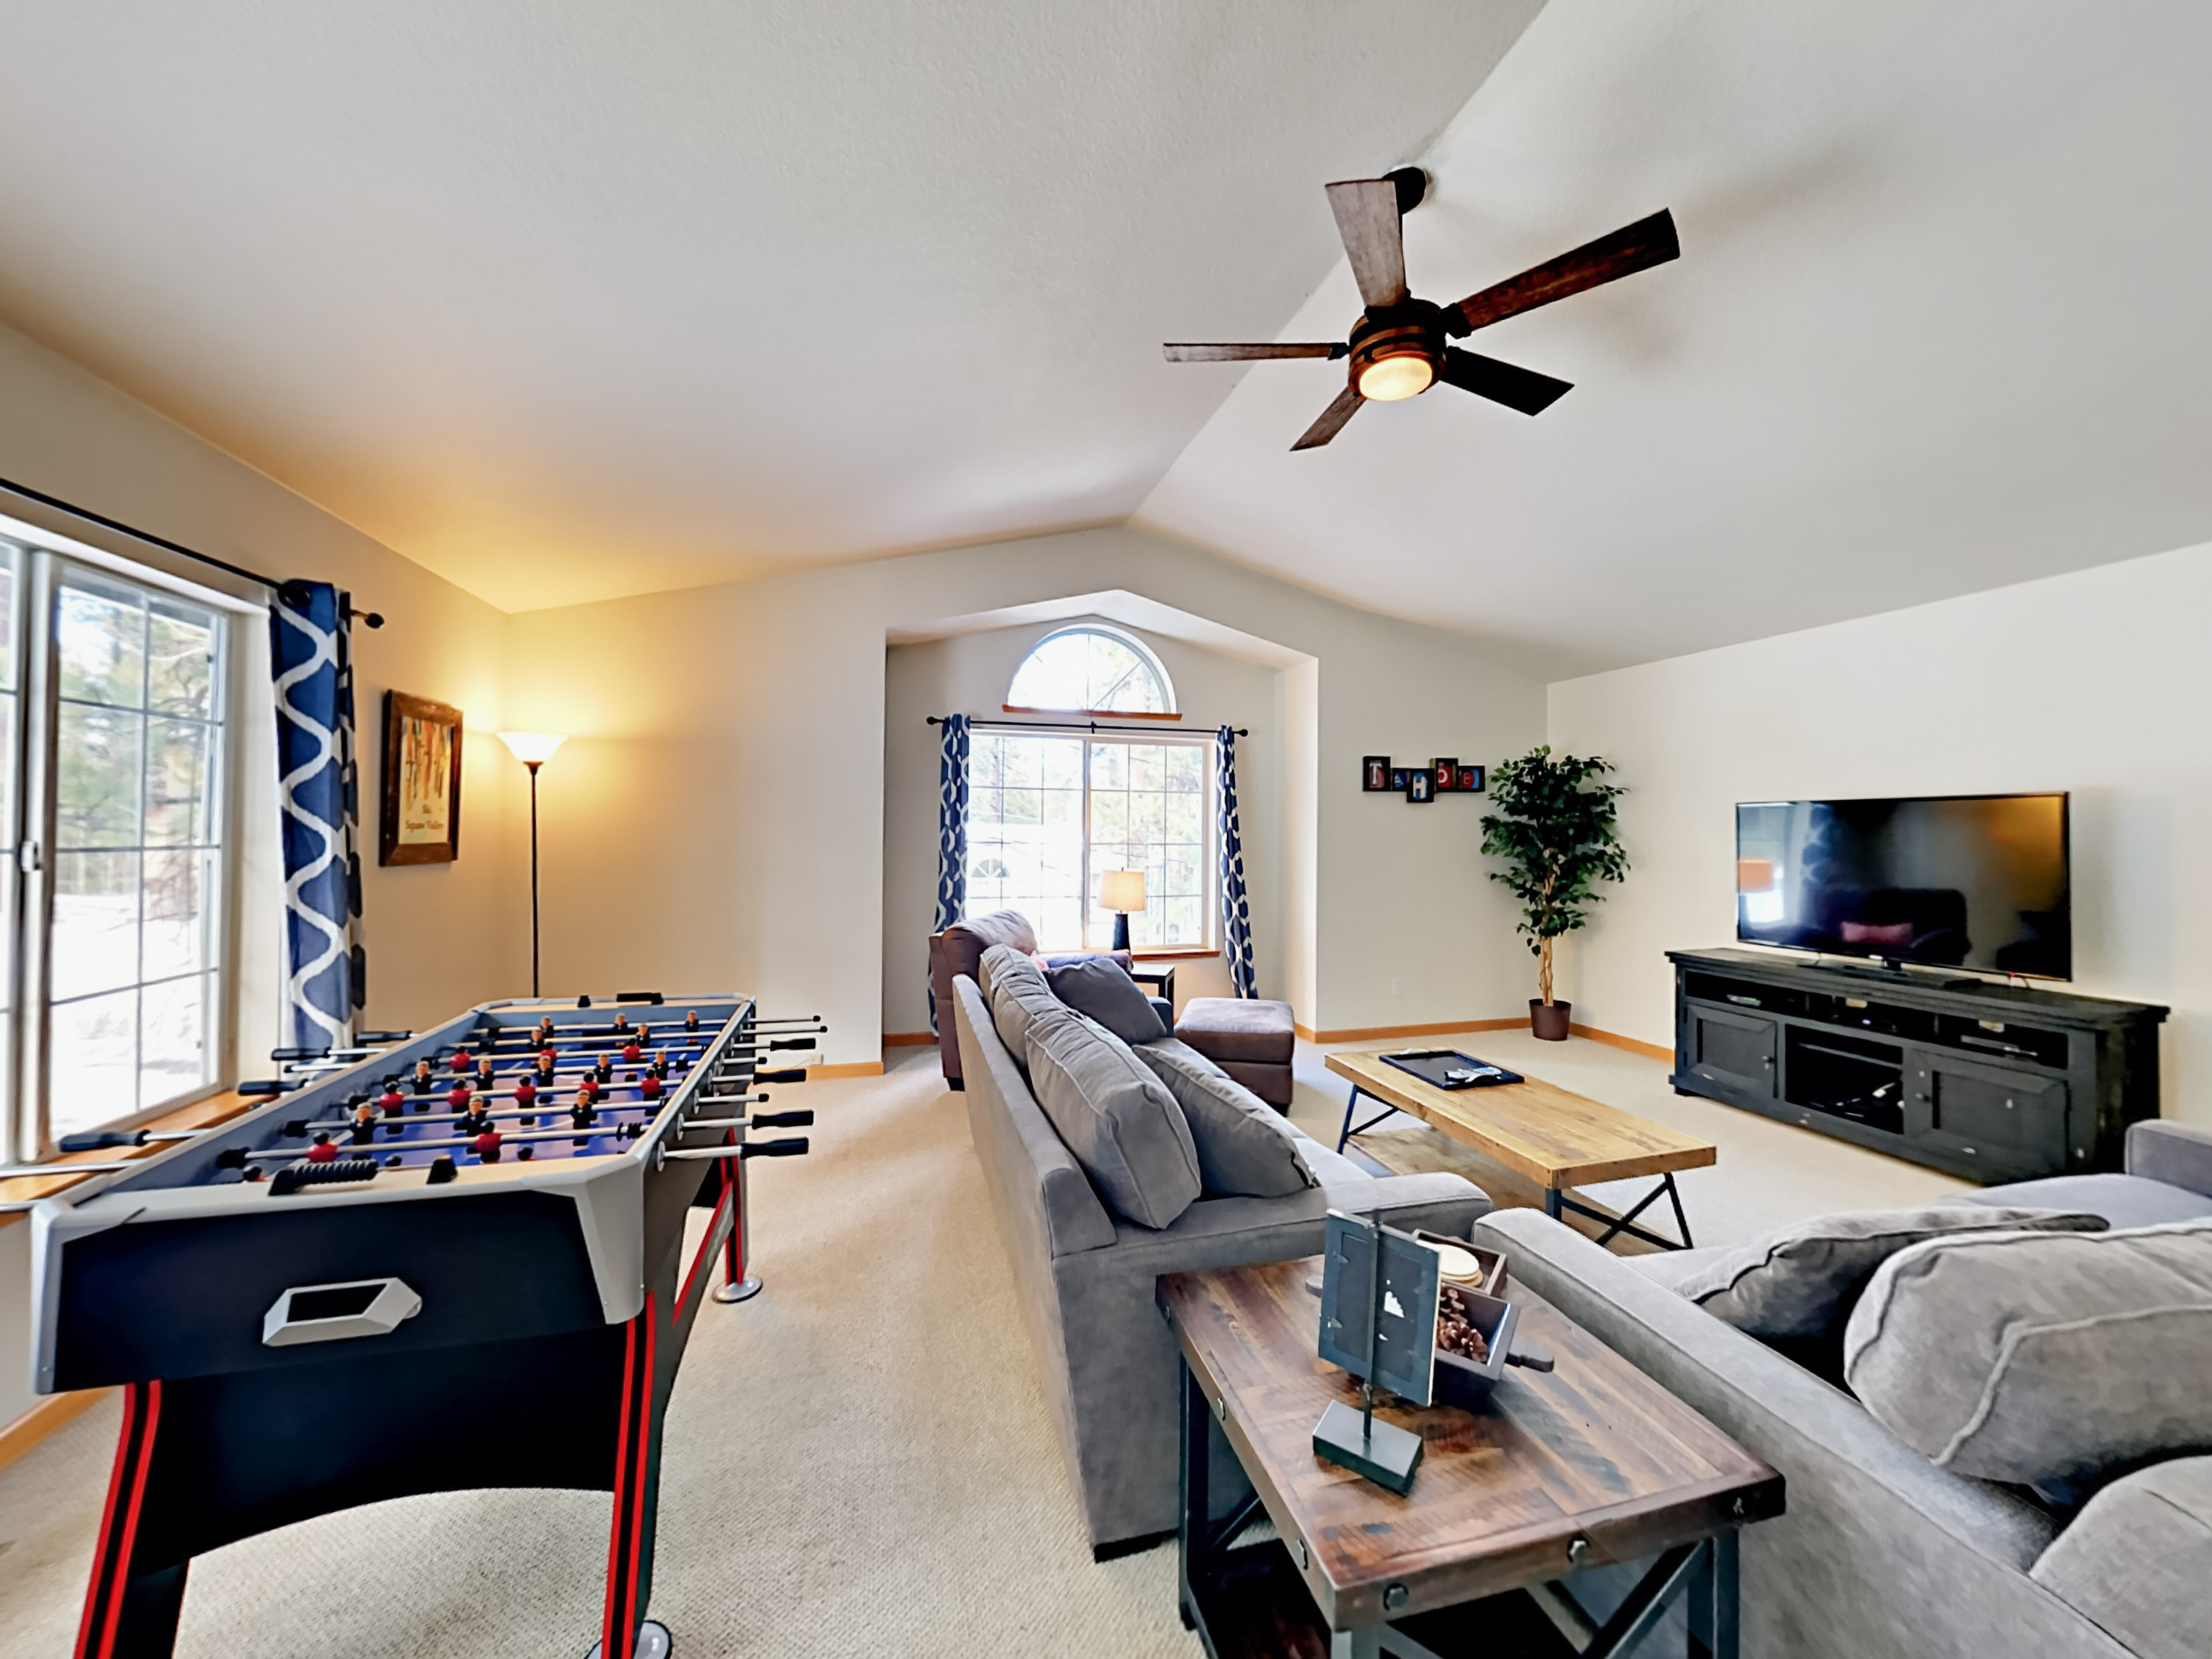 South Lake Tahoe CA Vacation Rental Welcome to your